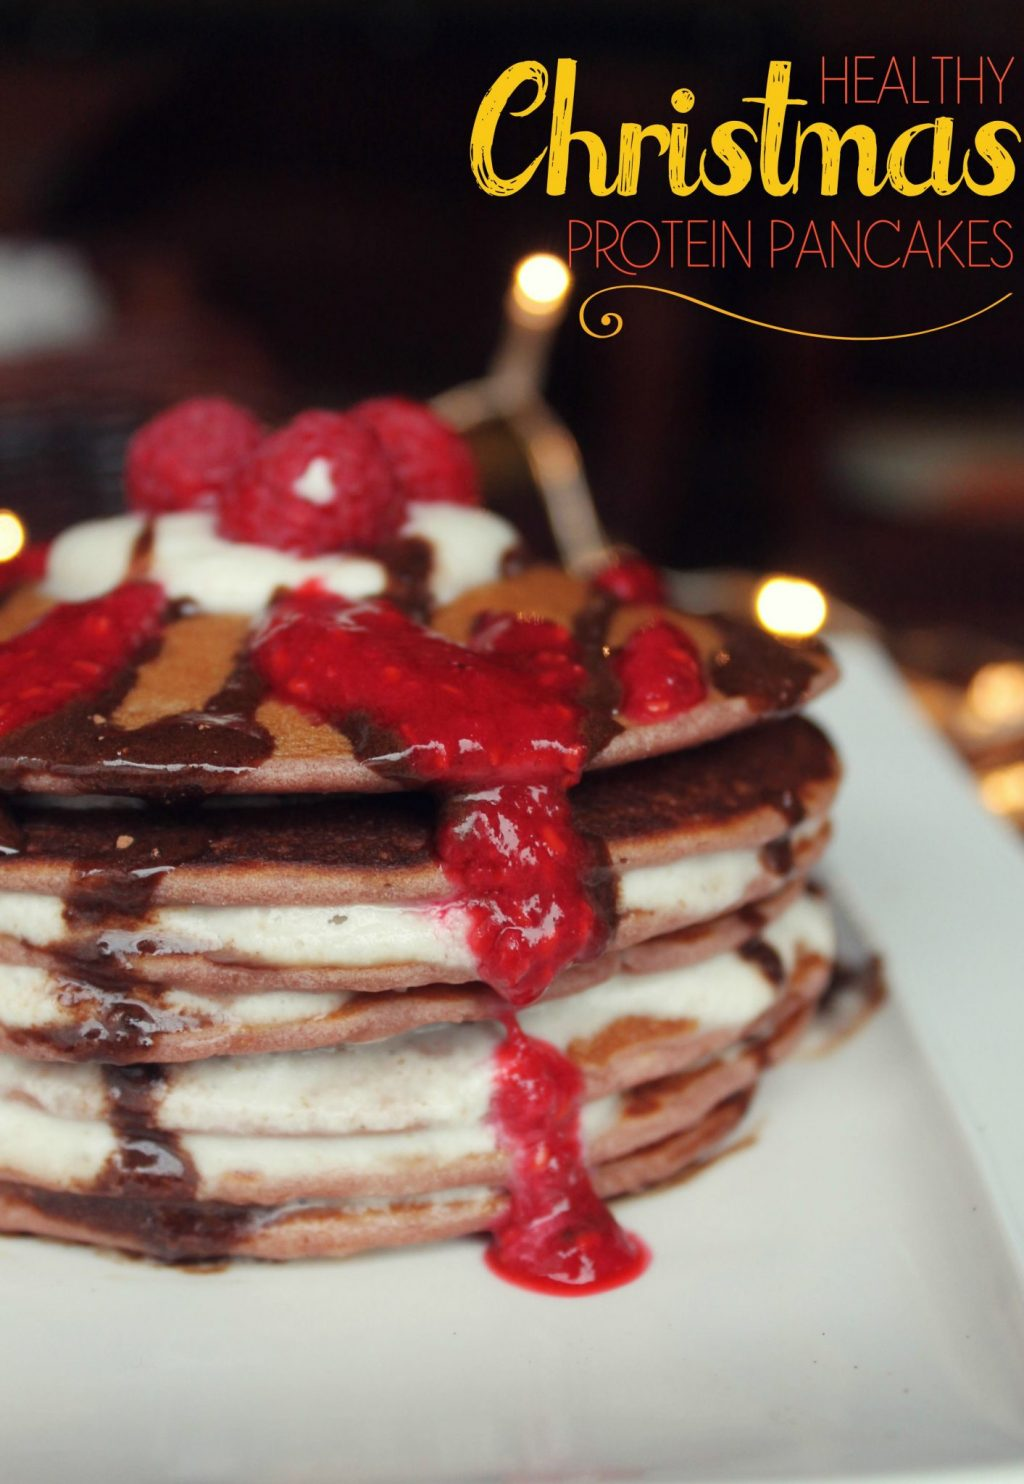 Healthy Christmas Recipes - Sugar free pancakes